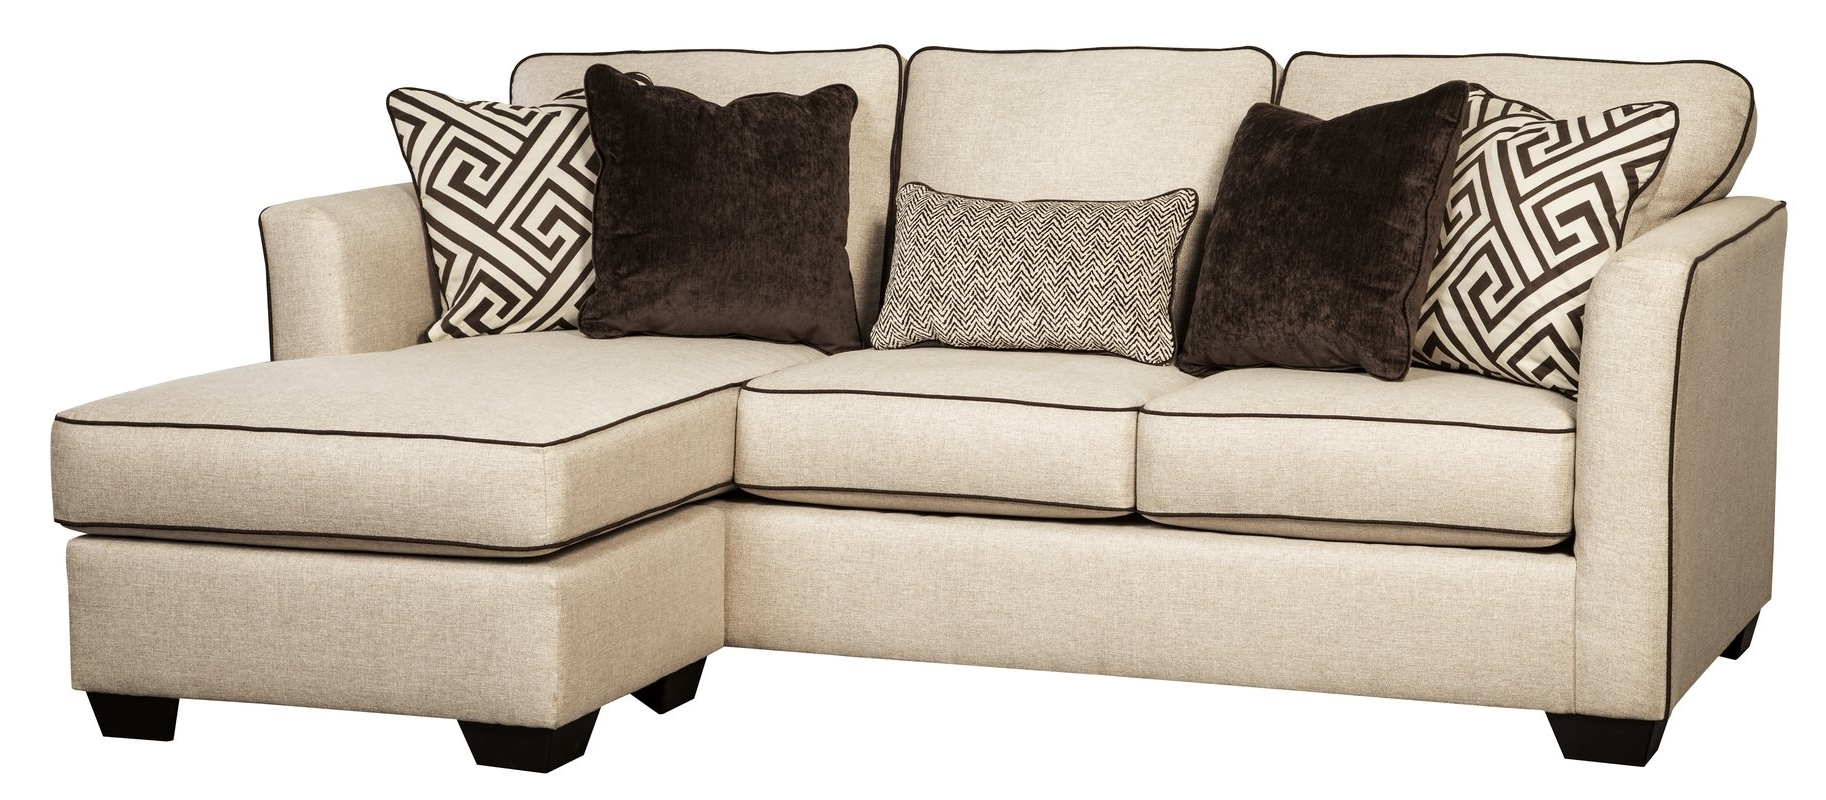 Wayfair Throughout Current Sofa Sleepers With Chaise (View 14 of 15)